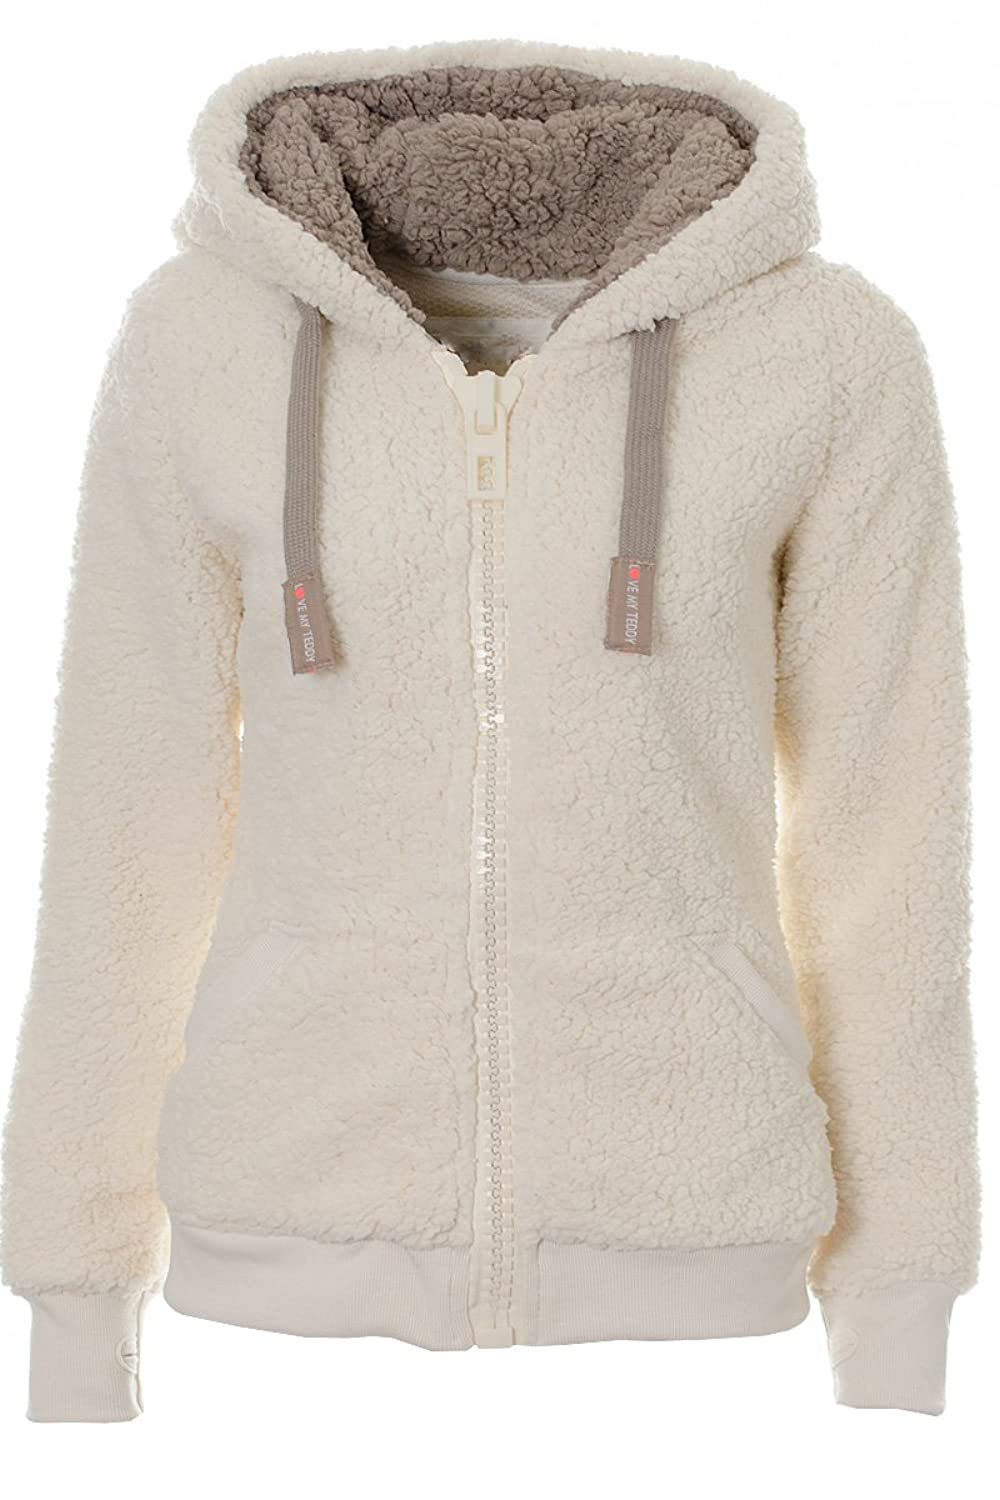 Ladies Womens Soft Teddy Fleece Lined Faux Fur Hooded Cardigan ...